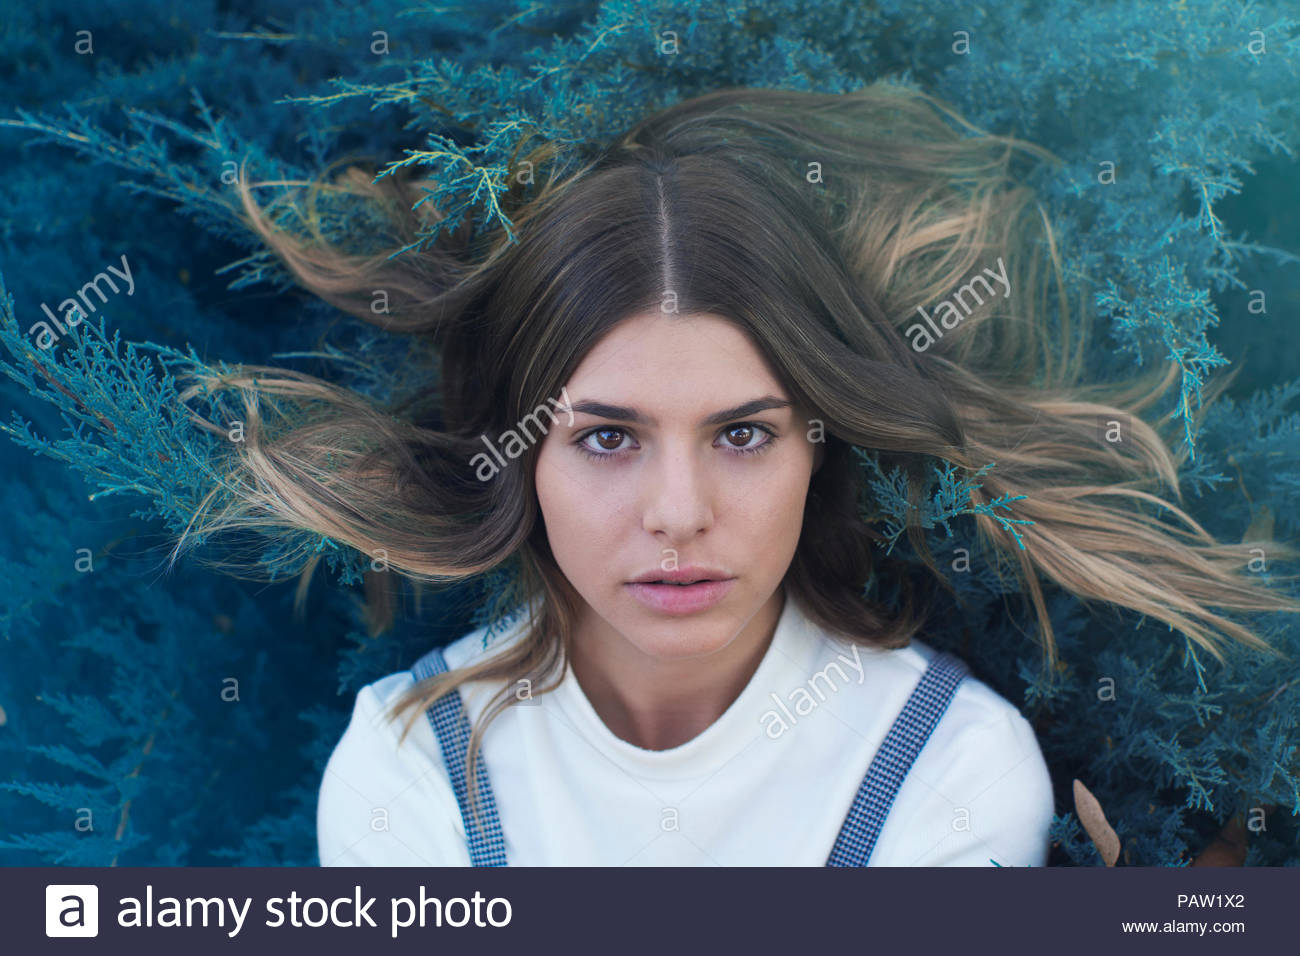 Close-up portrait of a beautiful young woman looking into the camera - Stock Image